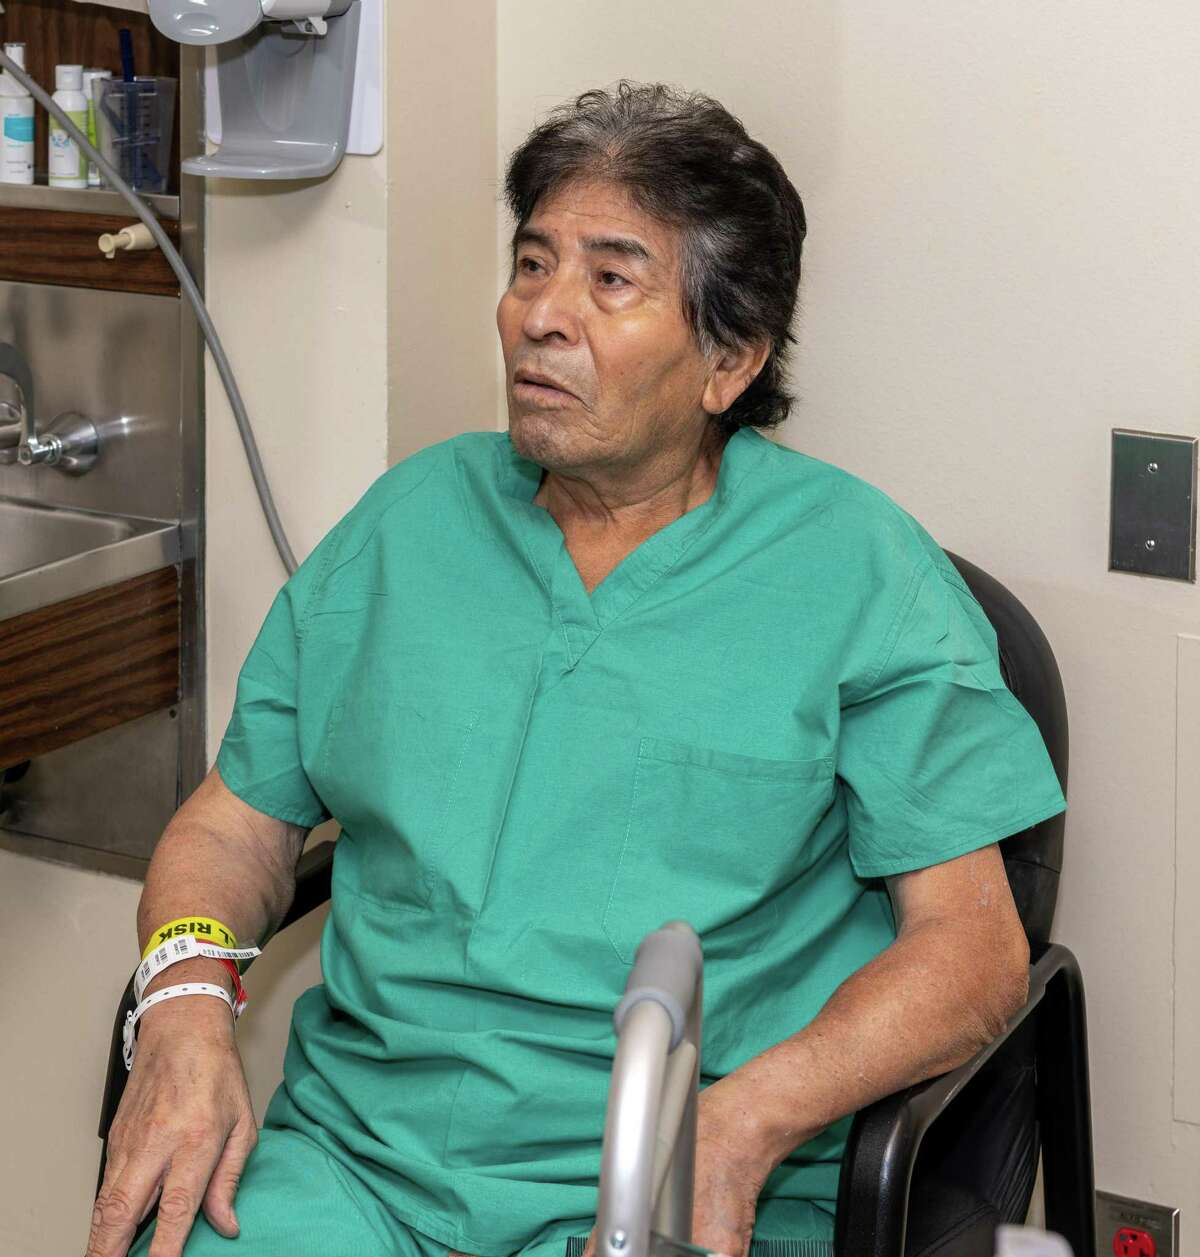 Francisco Medellin, the first double lung transplant patient in Texas gives an interview from his hospital room at Memorial Hermann Hospital on Thursday, September 10, 2020 in Houston Texas.